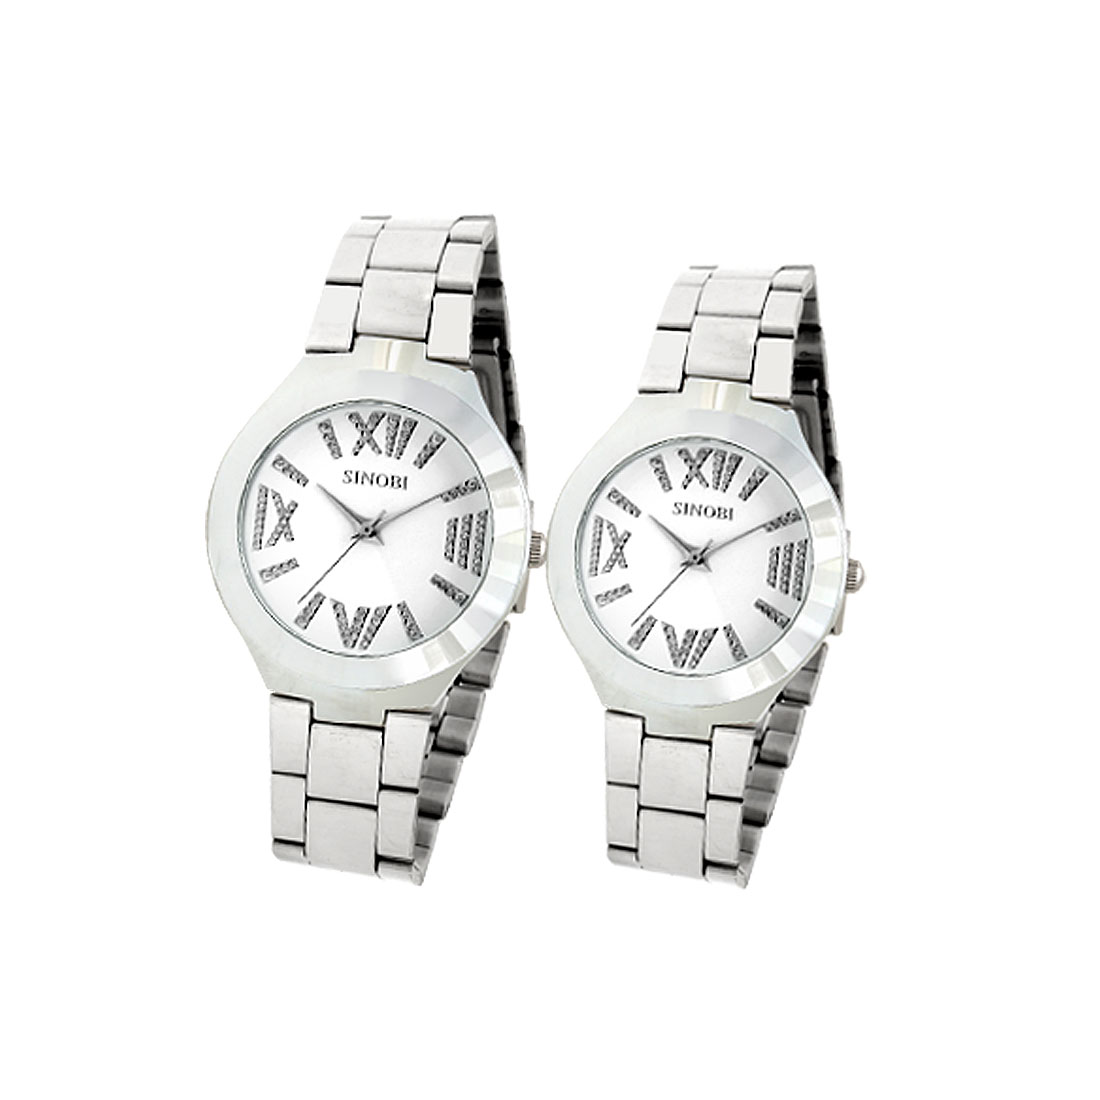 Pair of Collectors and Lovers Metal Band Quartz Wrist Watches